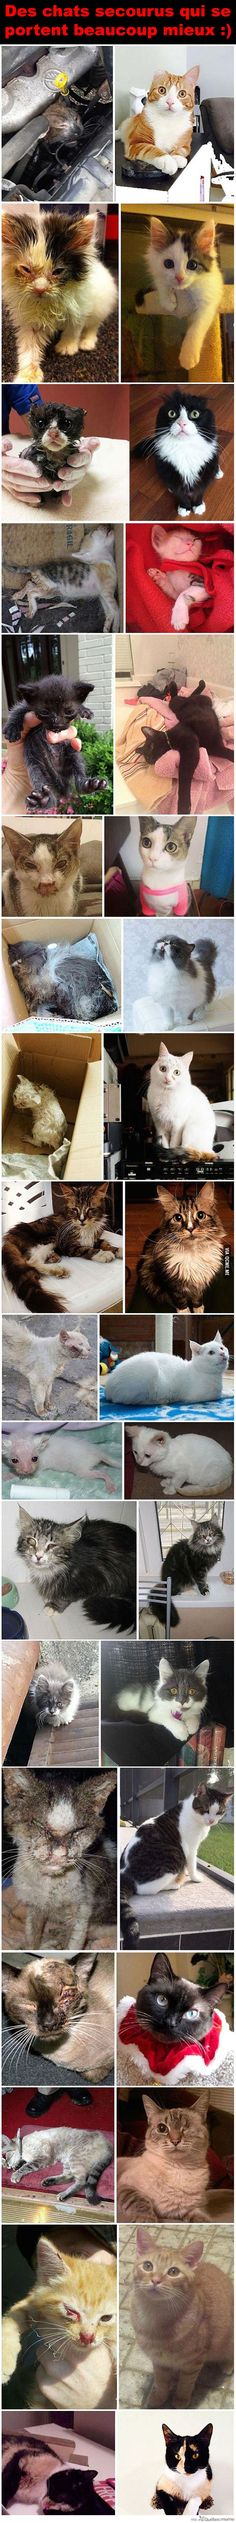 Rescued cats.